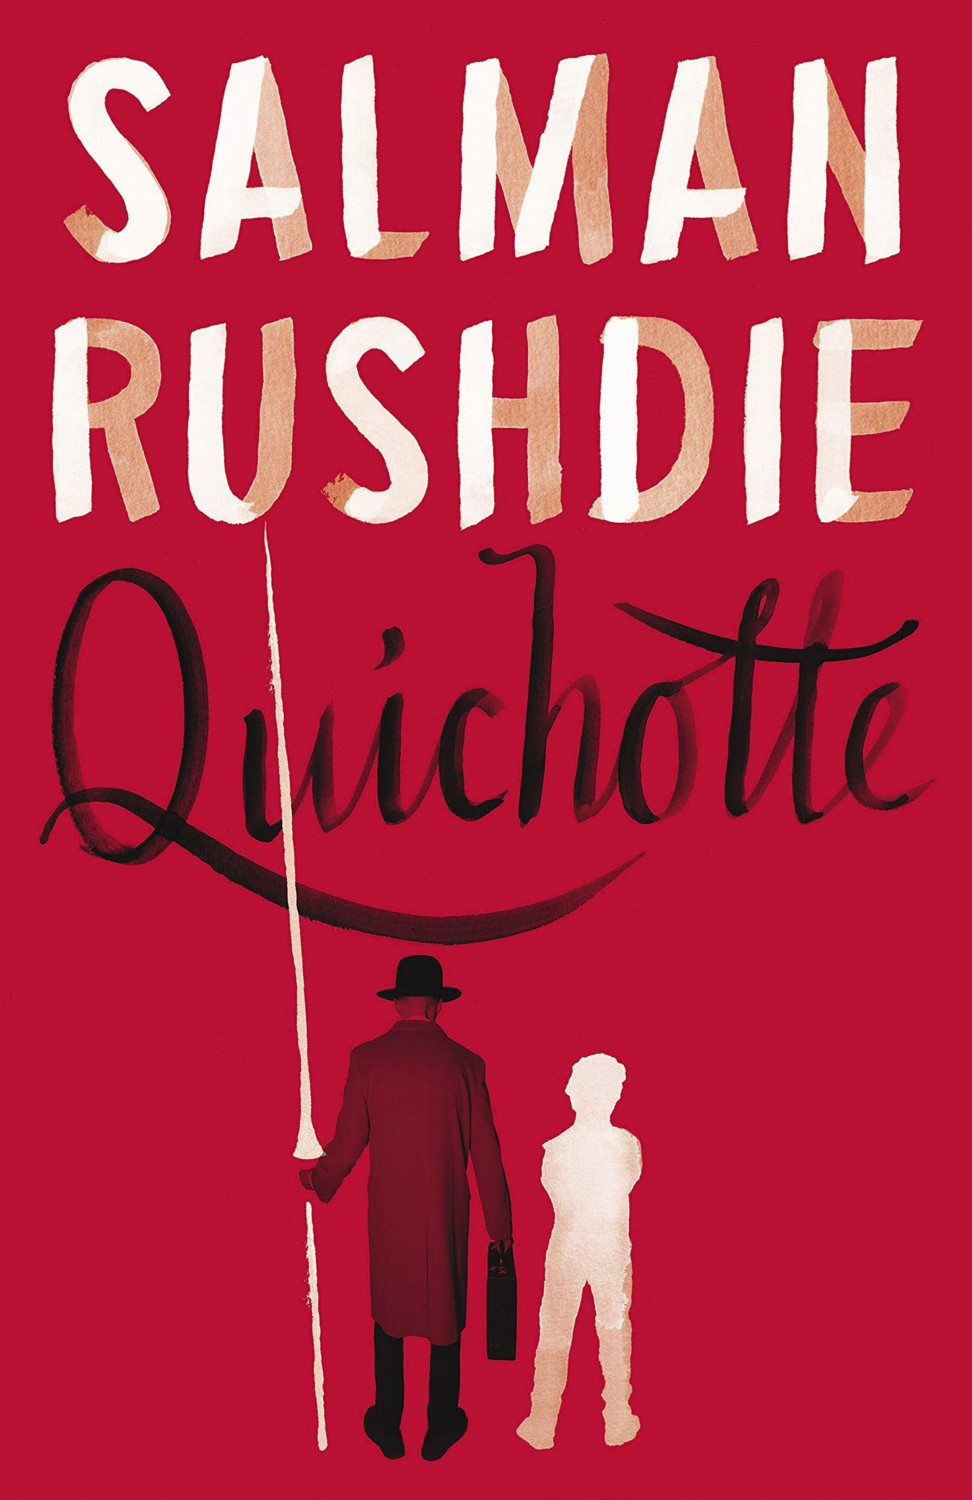 Salman Rushdie's Quichotte brings Cervantes' epic Don Quixote into the modern age